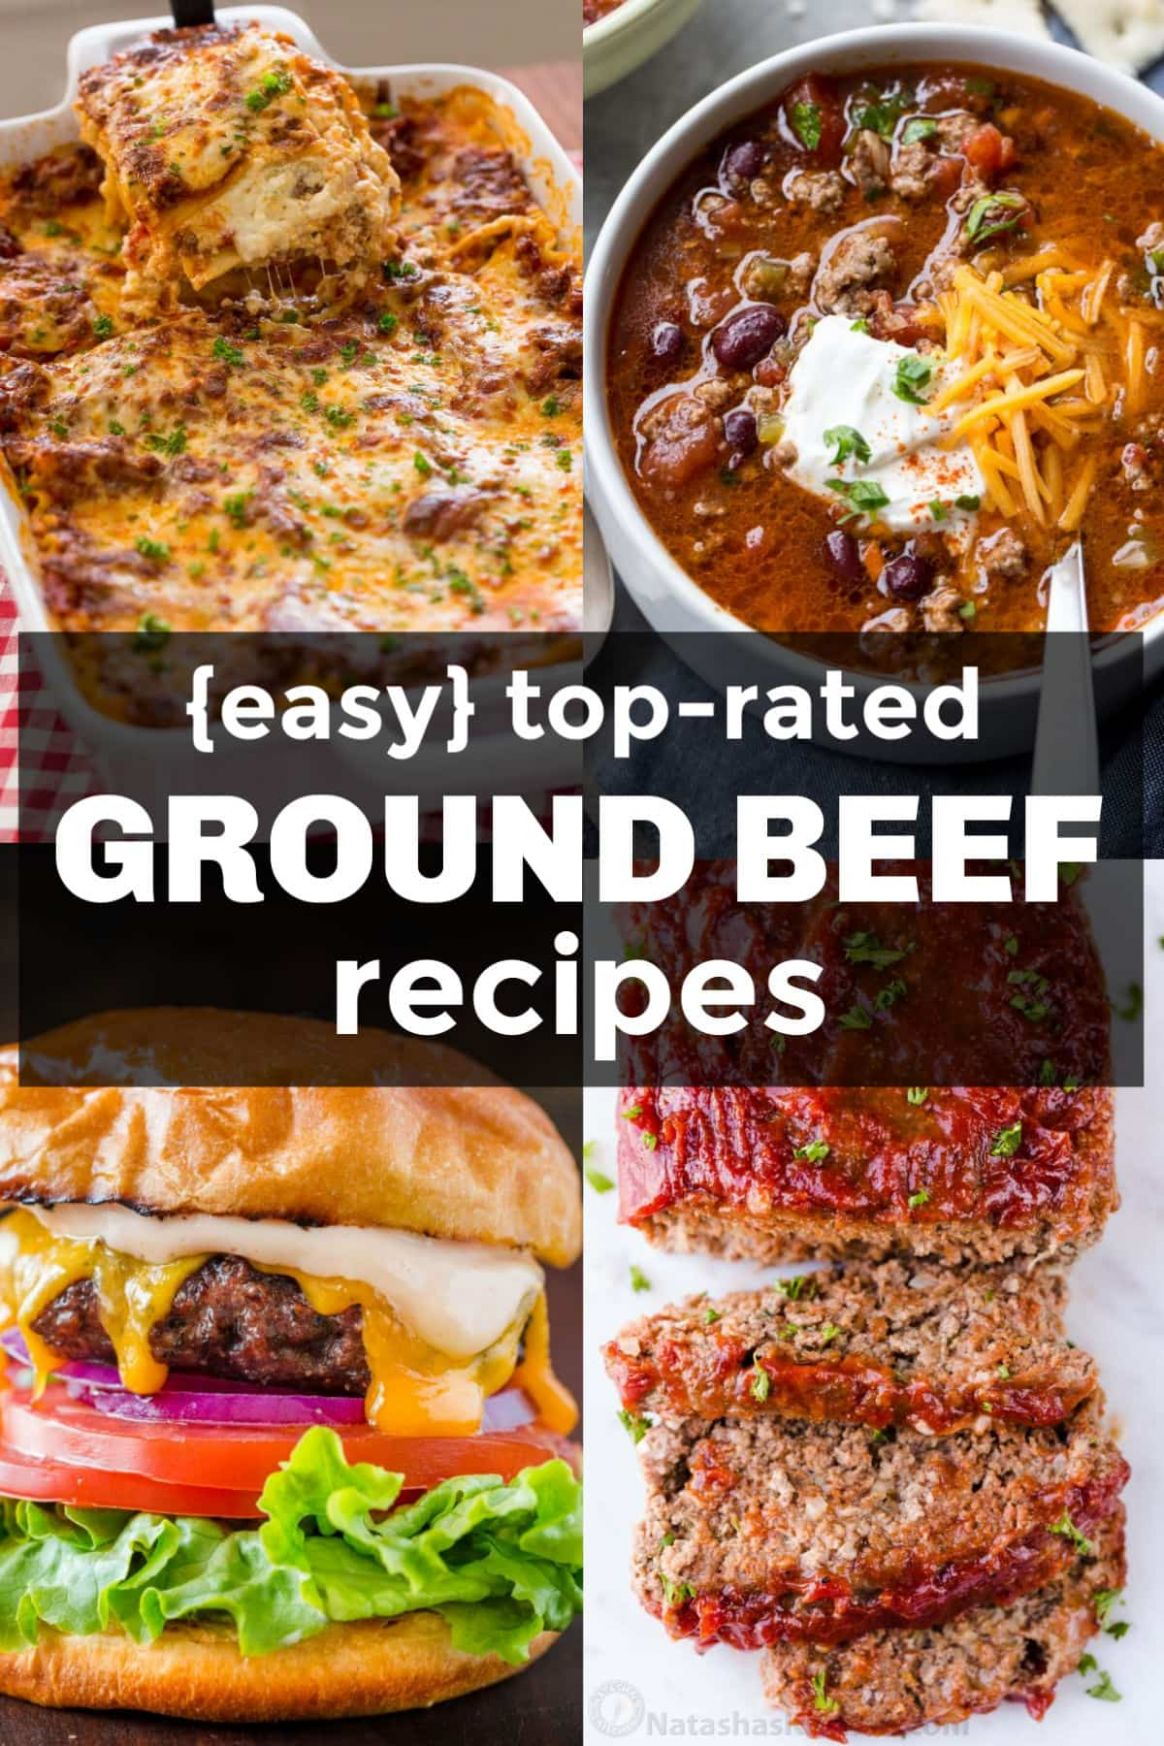 How to Cook Ground Beef for Ground Beef Recipes - Dinner Recipes With Ground Beef